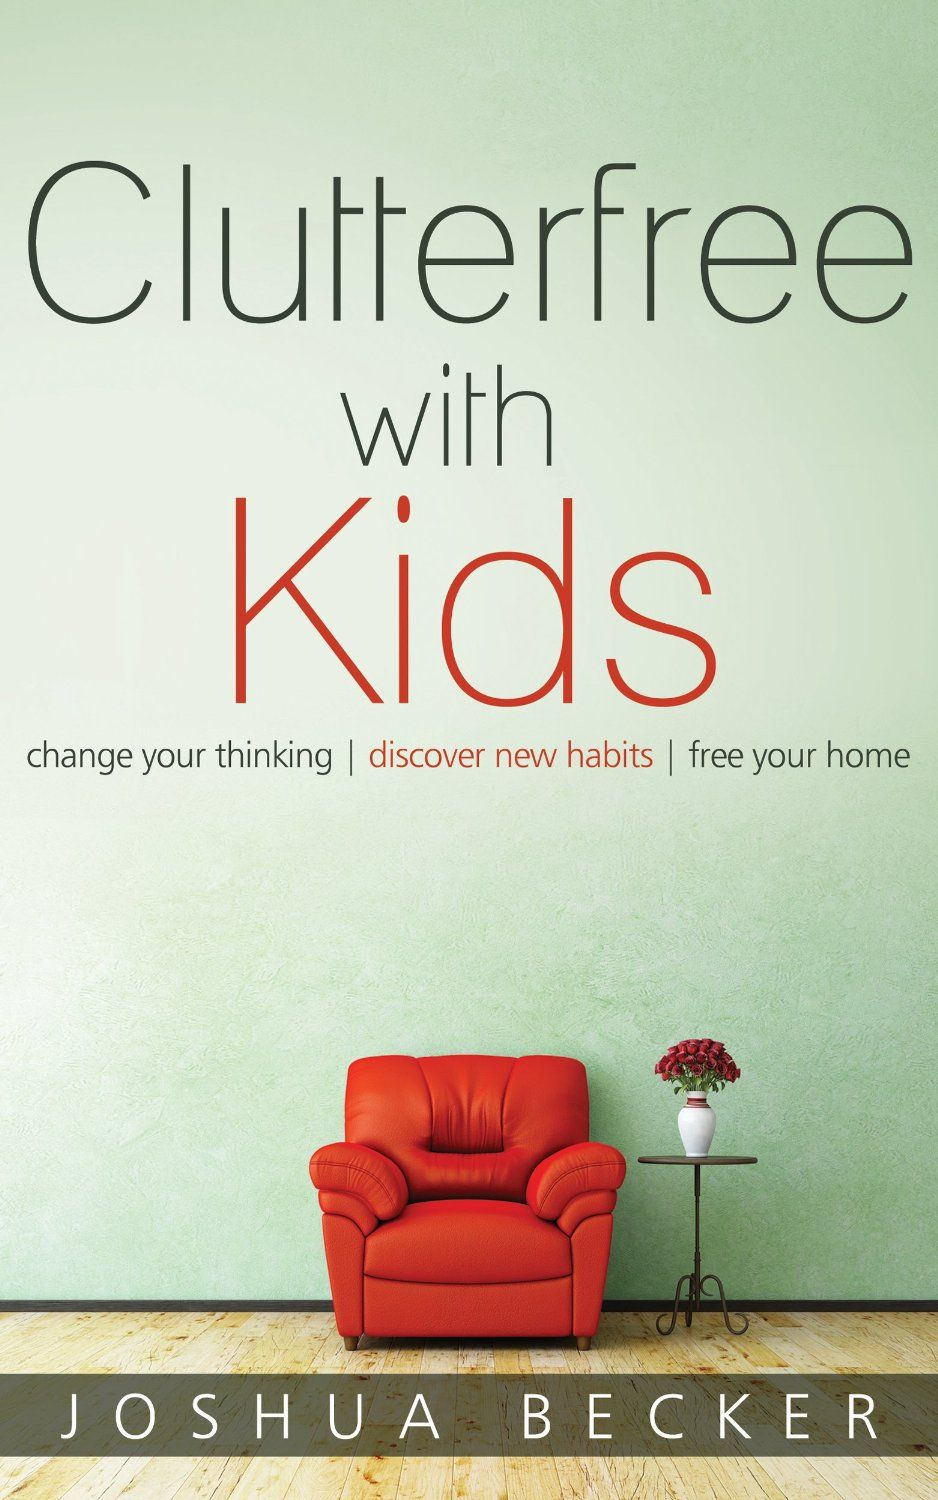 My friend joshuaus new book goes way beyond living